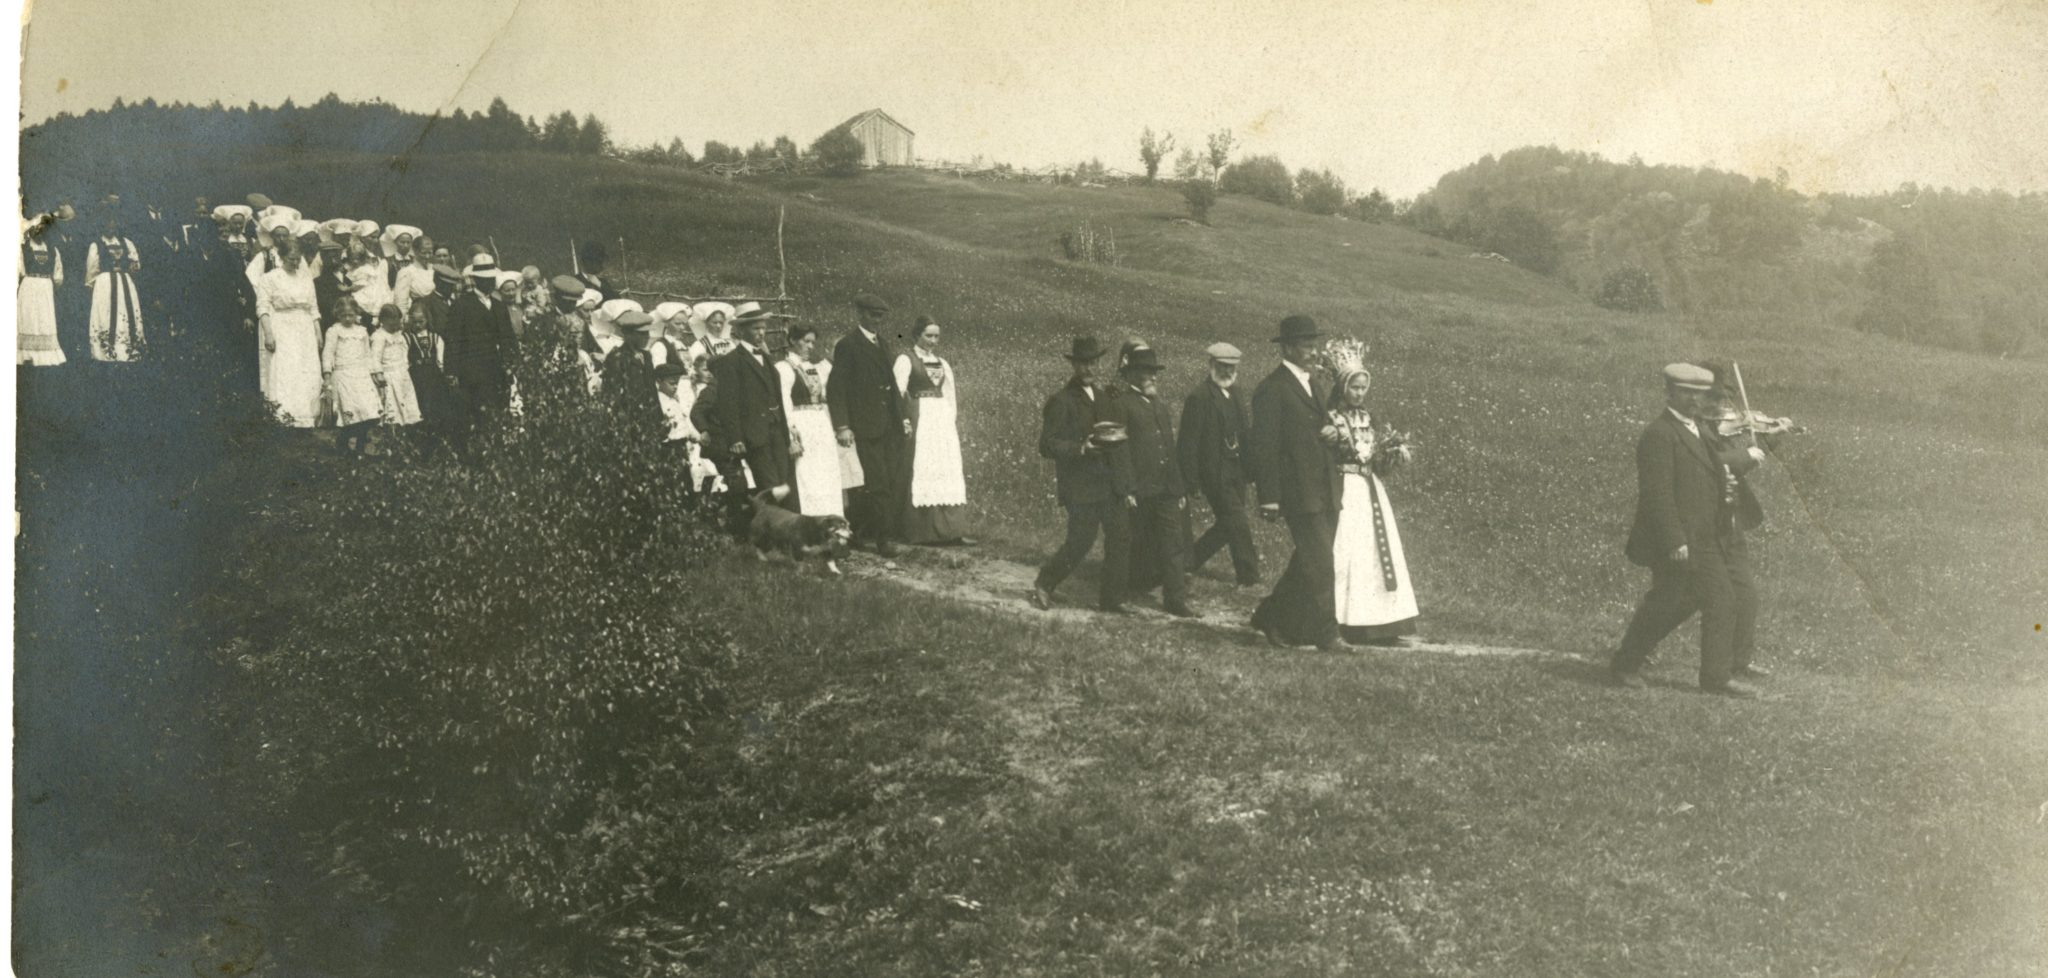 Large group of people parade down a dirt road during a wedding.